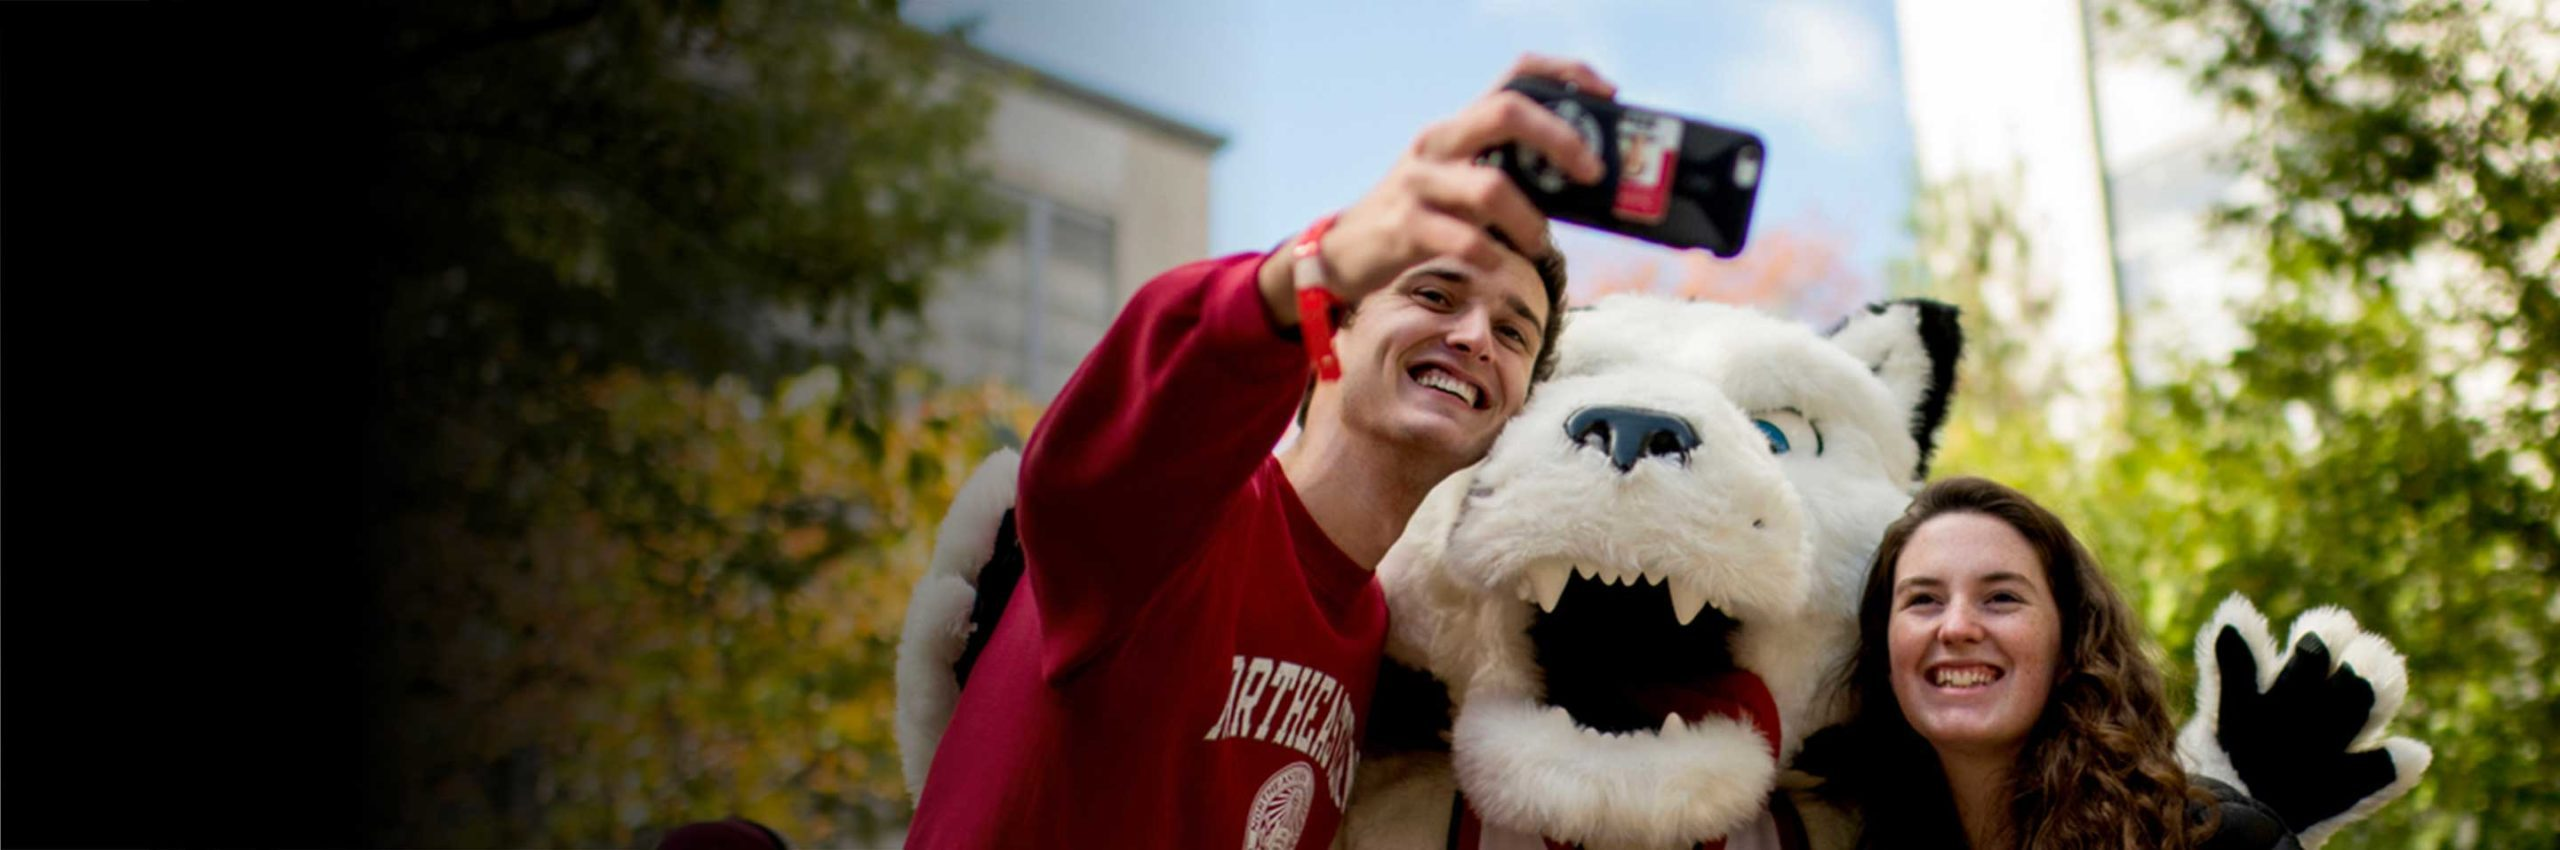 Students take a selfie with Paws the husky